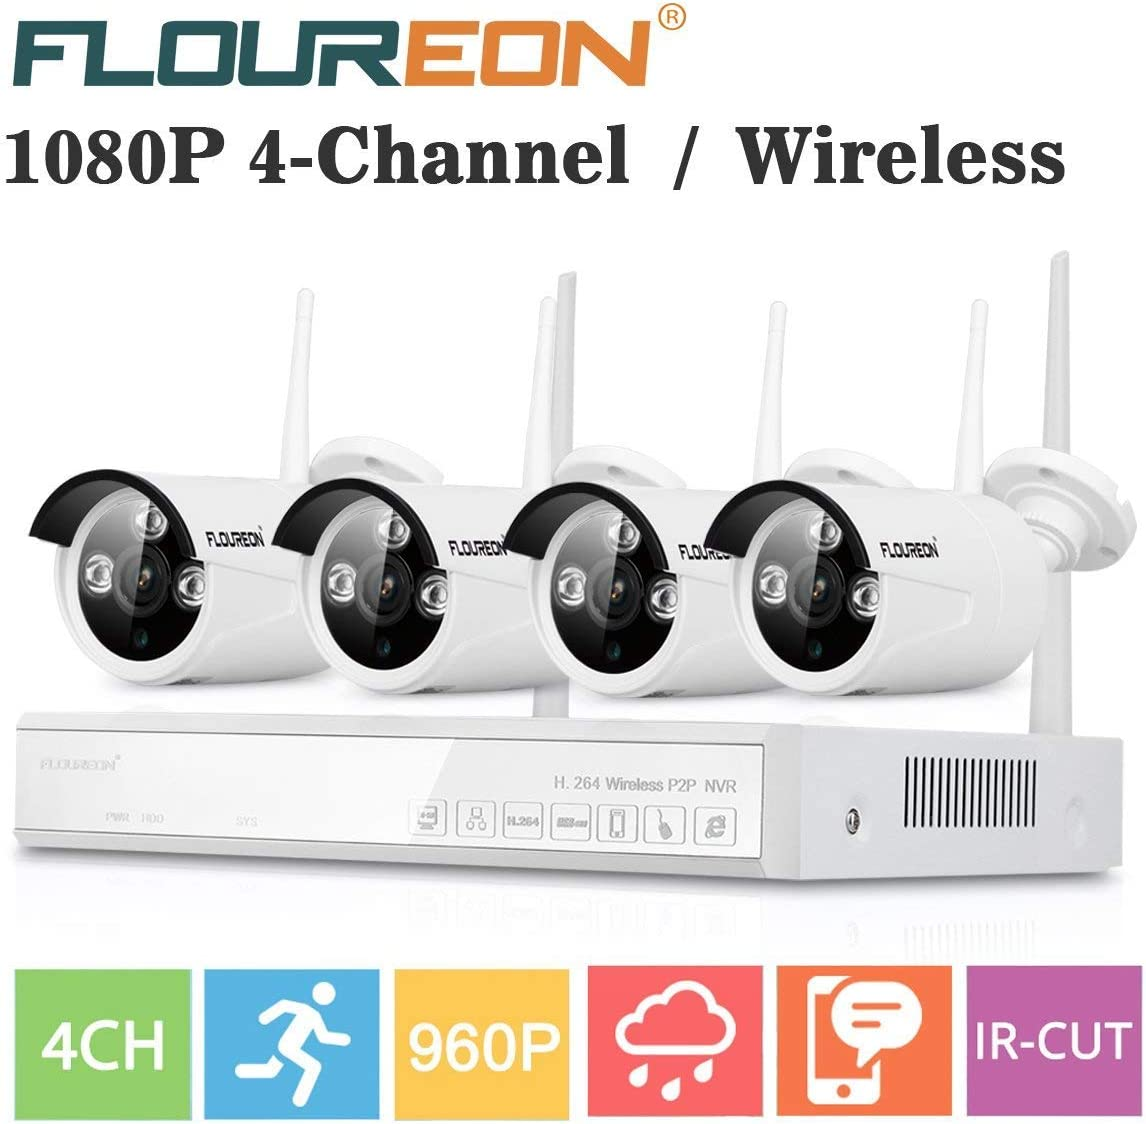 FLOUREON Wireless Home Security Camera System 4CH 1080P NVR Kits 4 Pack 960P 1.3MP HD Wireless IP Camera Network WiFi Night Vision Remote Access Motion Detection 4CH 4X 960P Camera